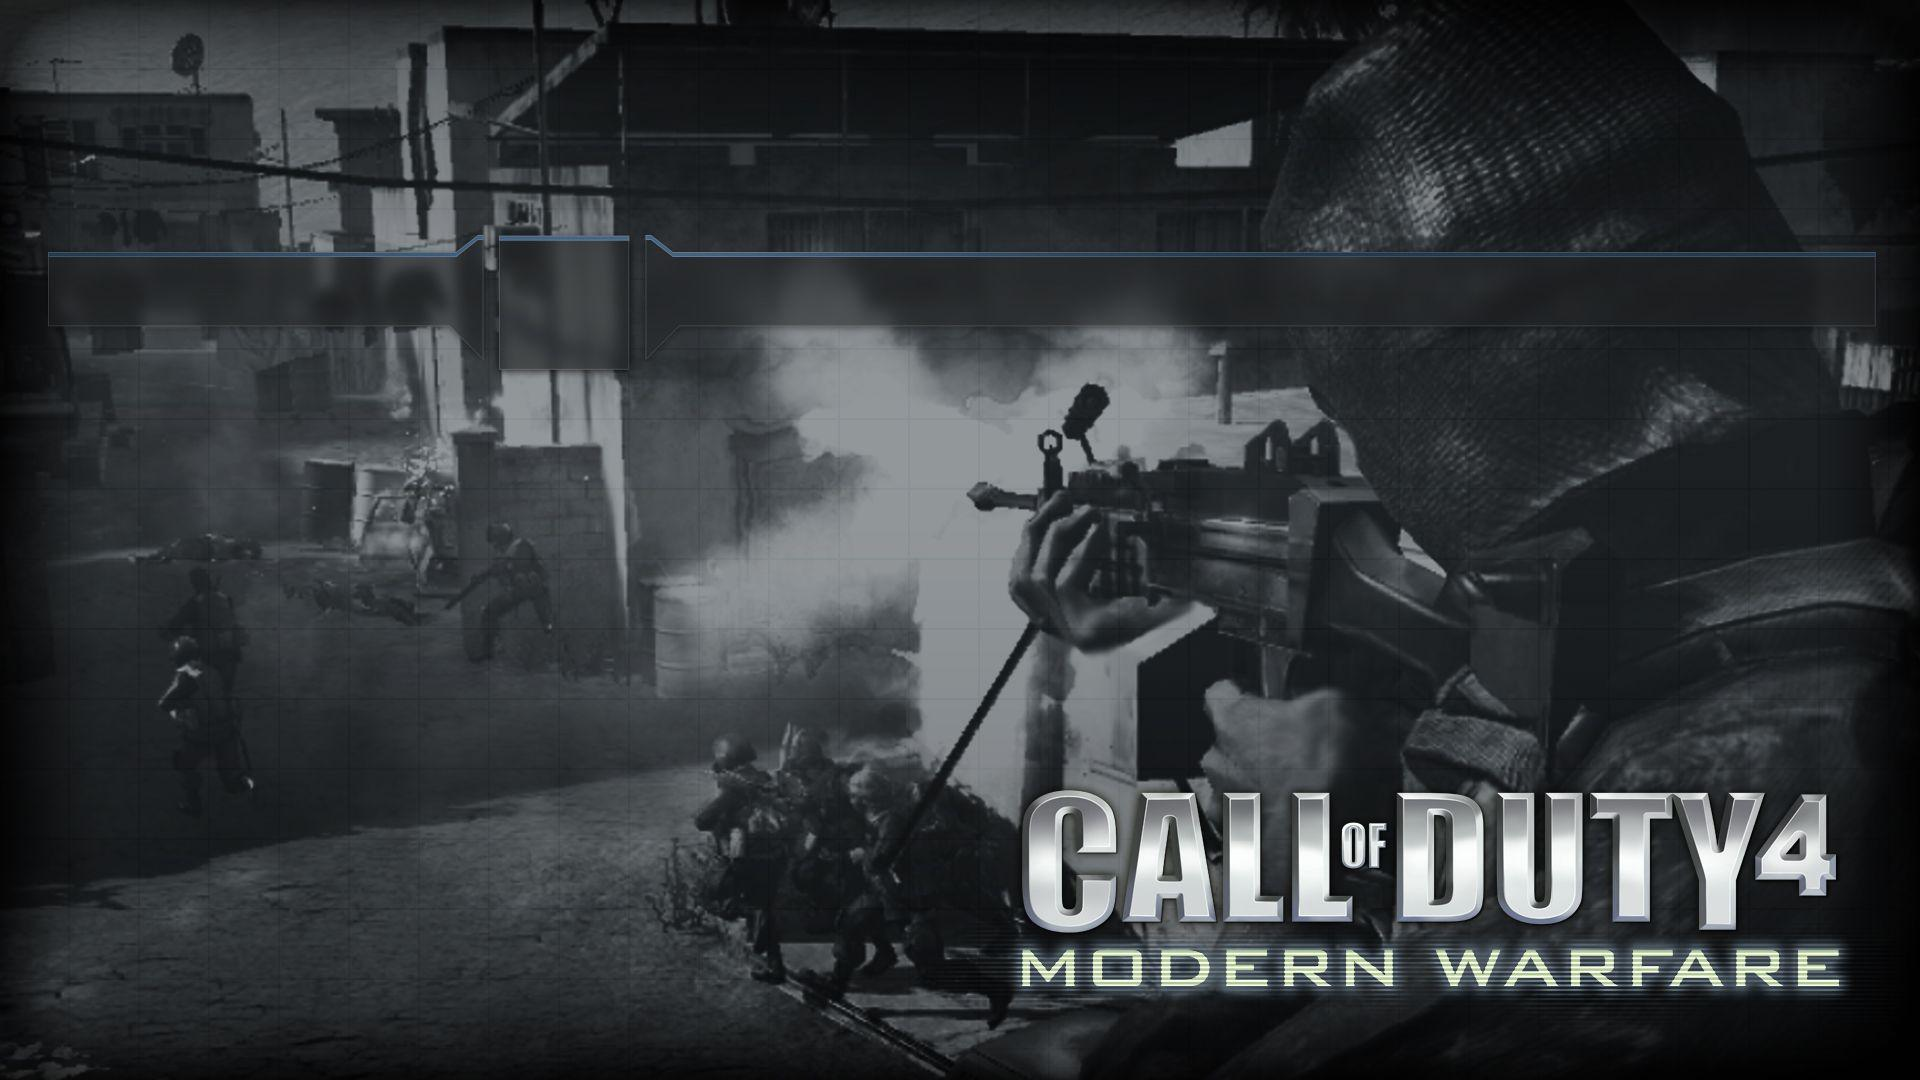 ps3 themes call of duty 4